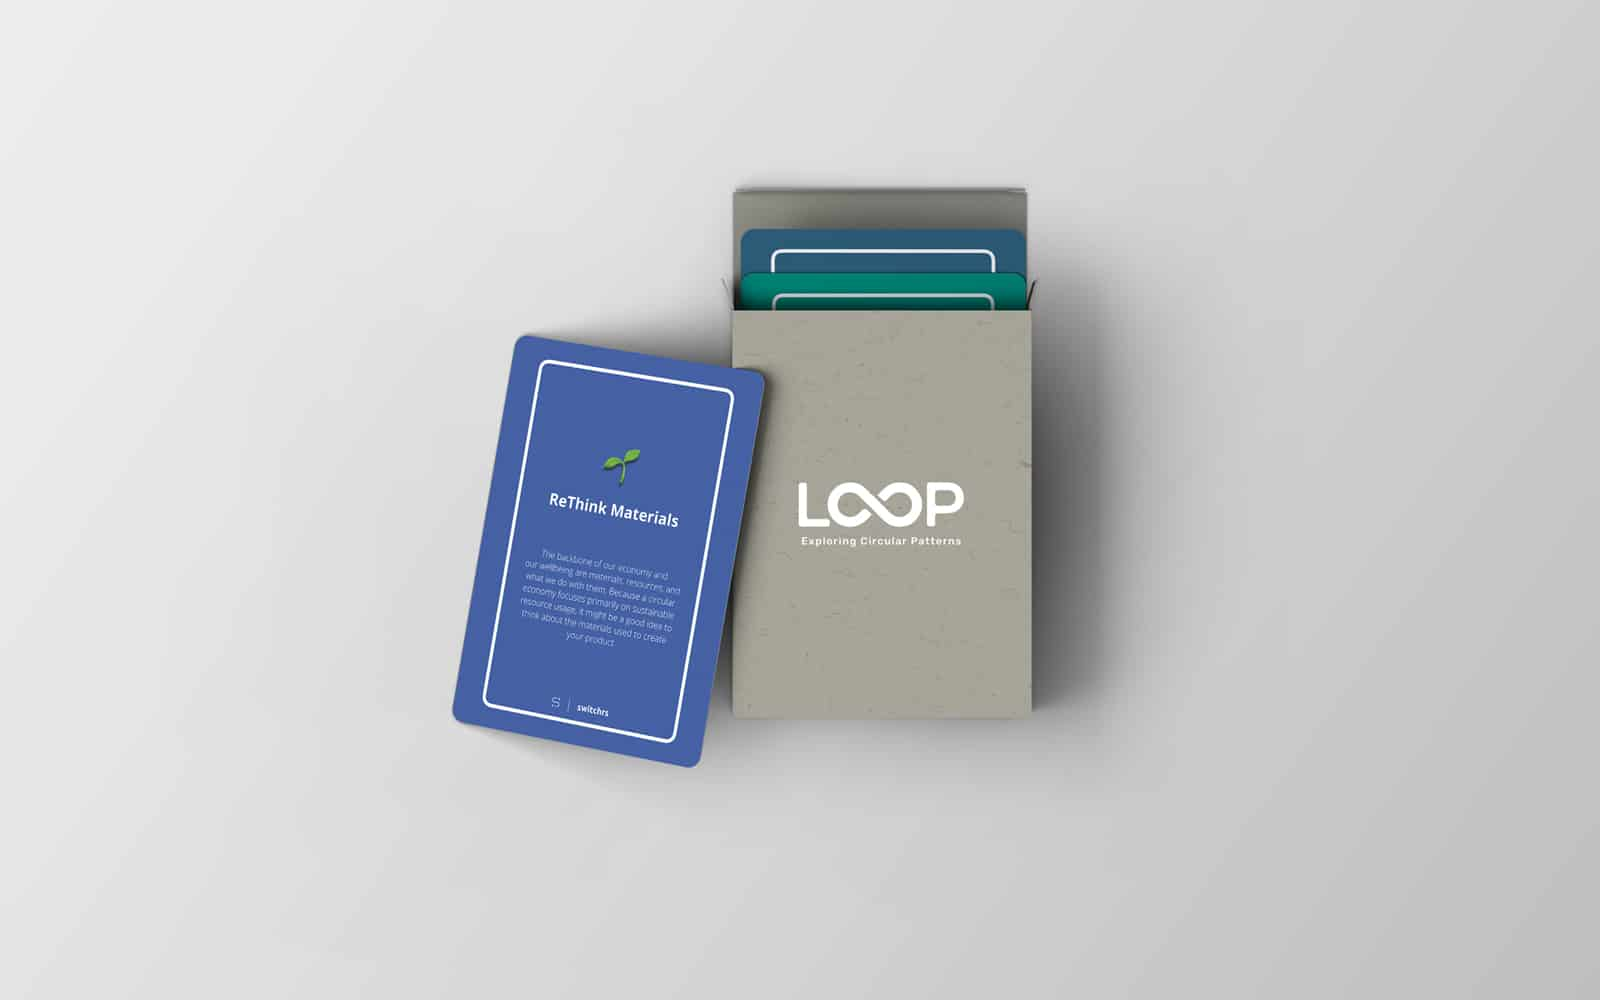 Loop - Exploring circular business patterns